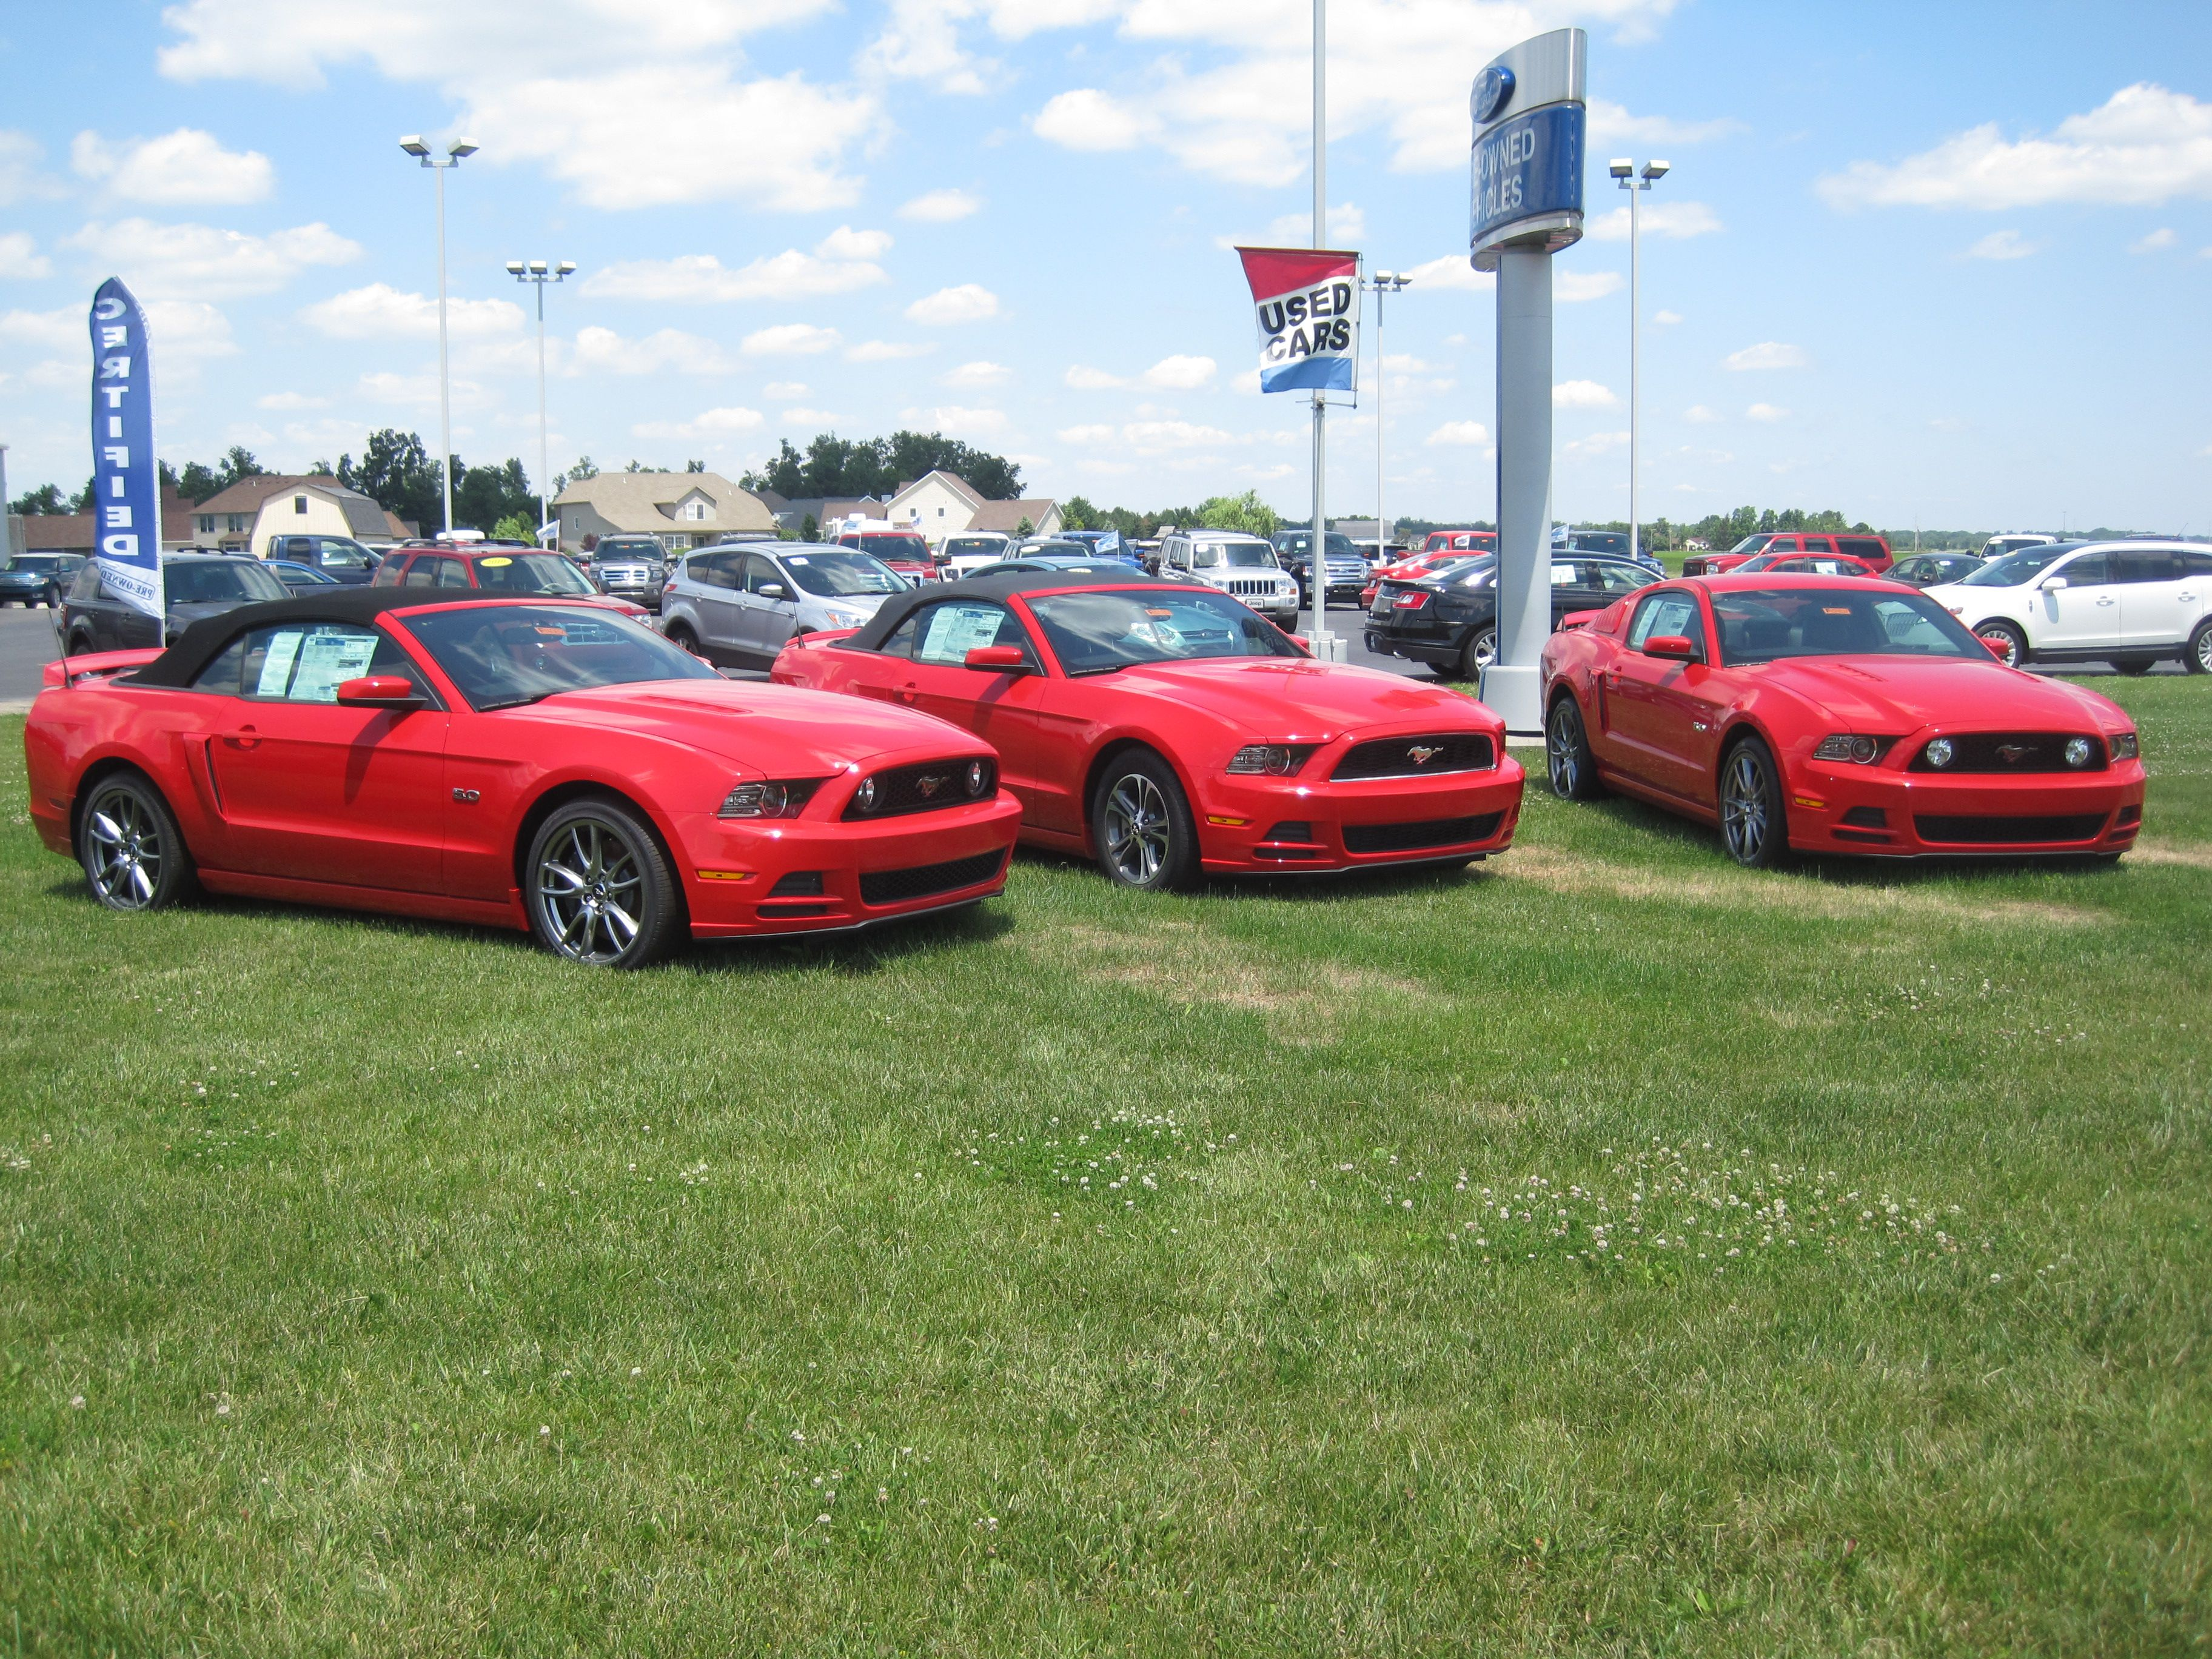 Ford Mustangs at Steve Rogers Ford #ford #mustang #auto & Ford Mustangs at Steve Rogers Ford #ford #mustang #auto | Ford ... markmcfarlin.com